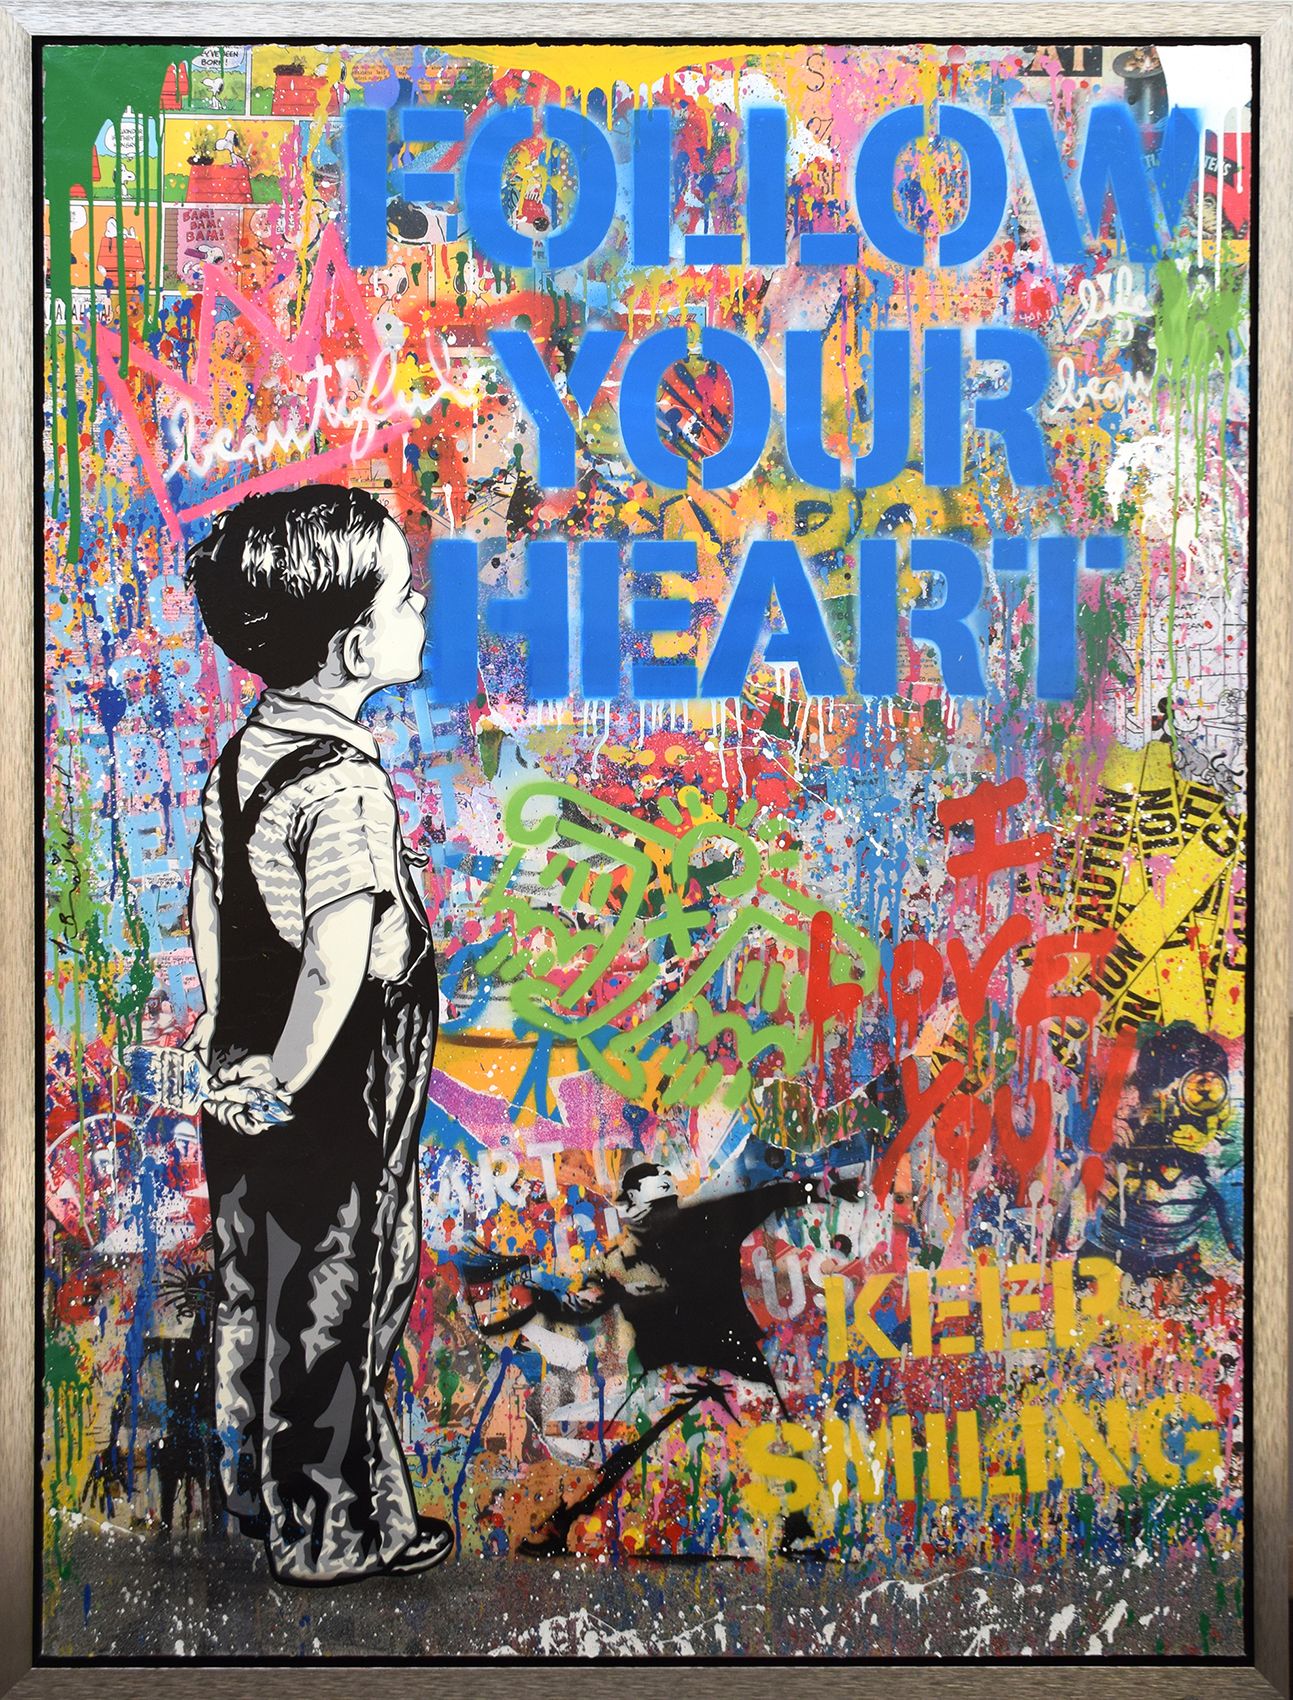 Mr. Brainwash - With all my Love (Follow your Heart) , 9003-012-151